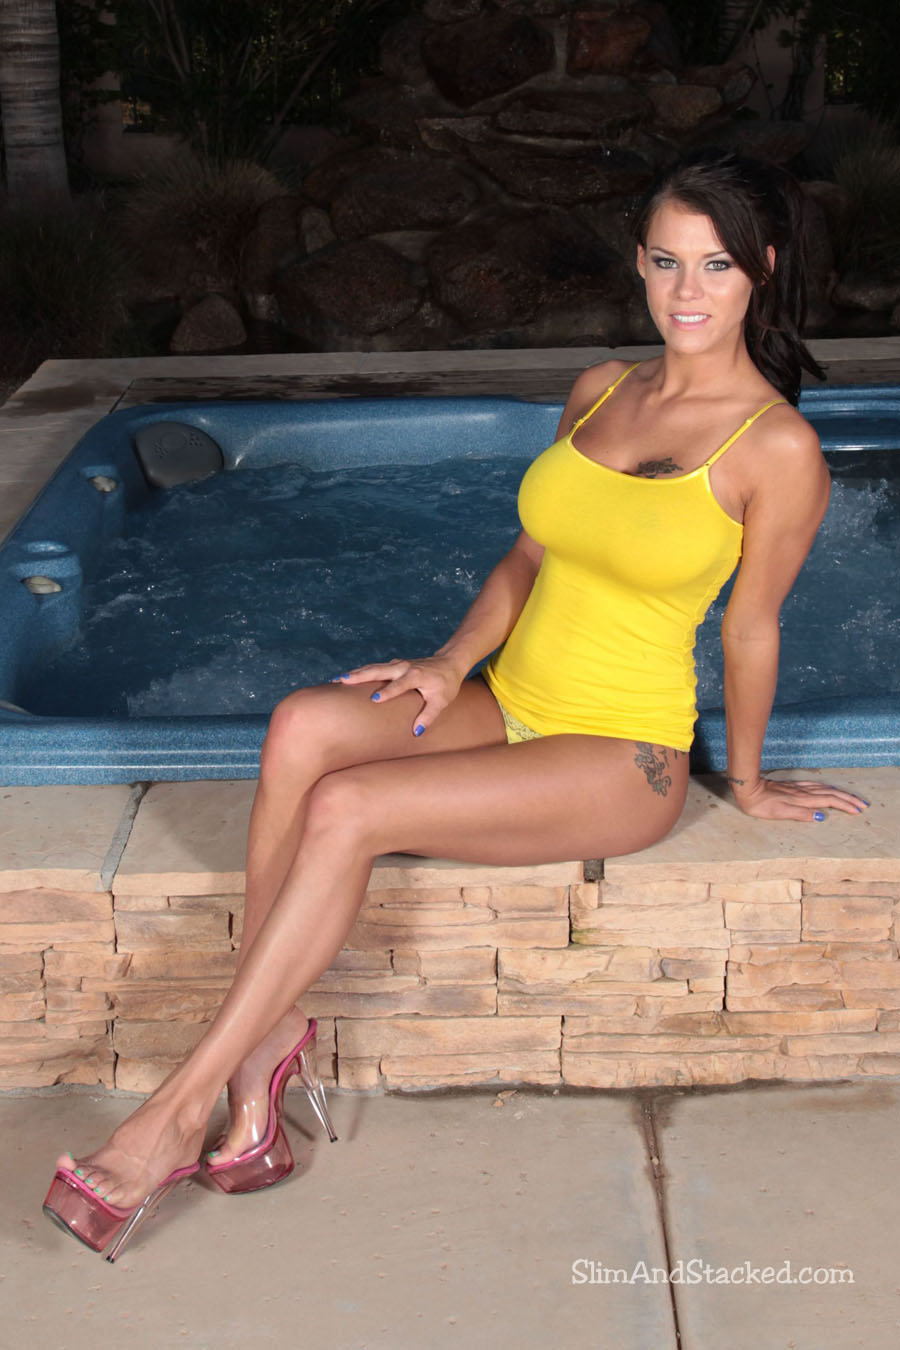 Peta looks stunning in a snug fitting yellow top.  But when she gets into the jacuzzi and her top gets wet, well.....  And when her top come off, well-well-well!  Enjoy the entire set in stunning 3000-pixel resolution by contacting dezertimagez@gmail.com for pricing on this set.